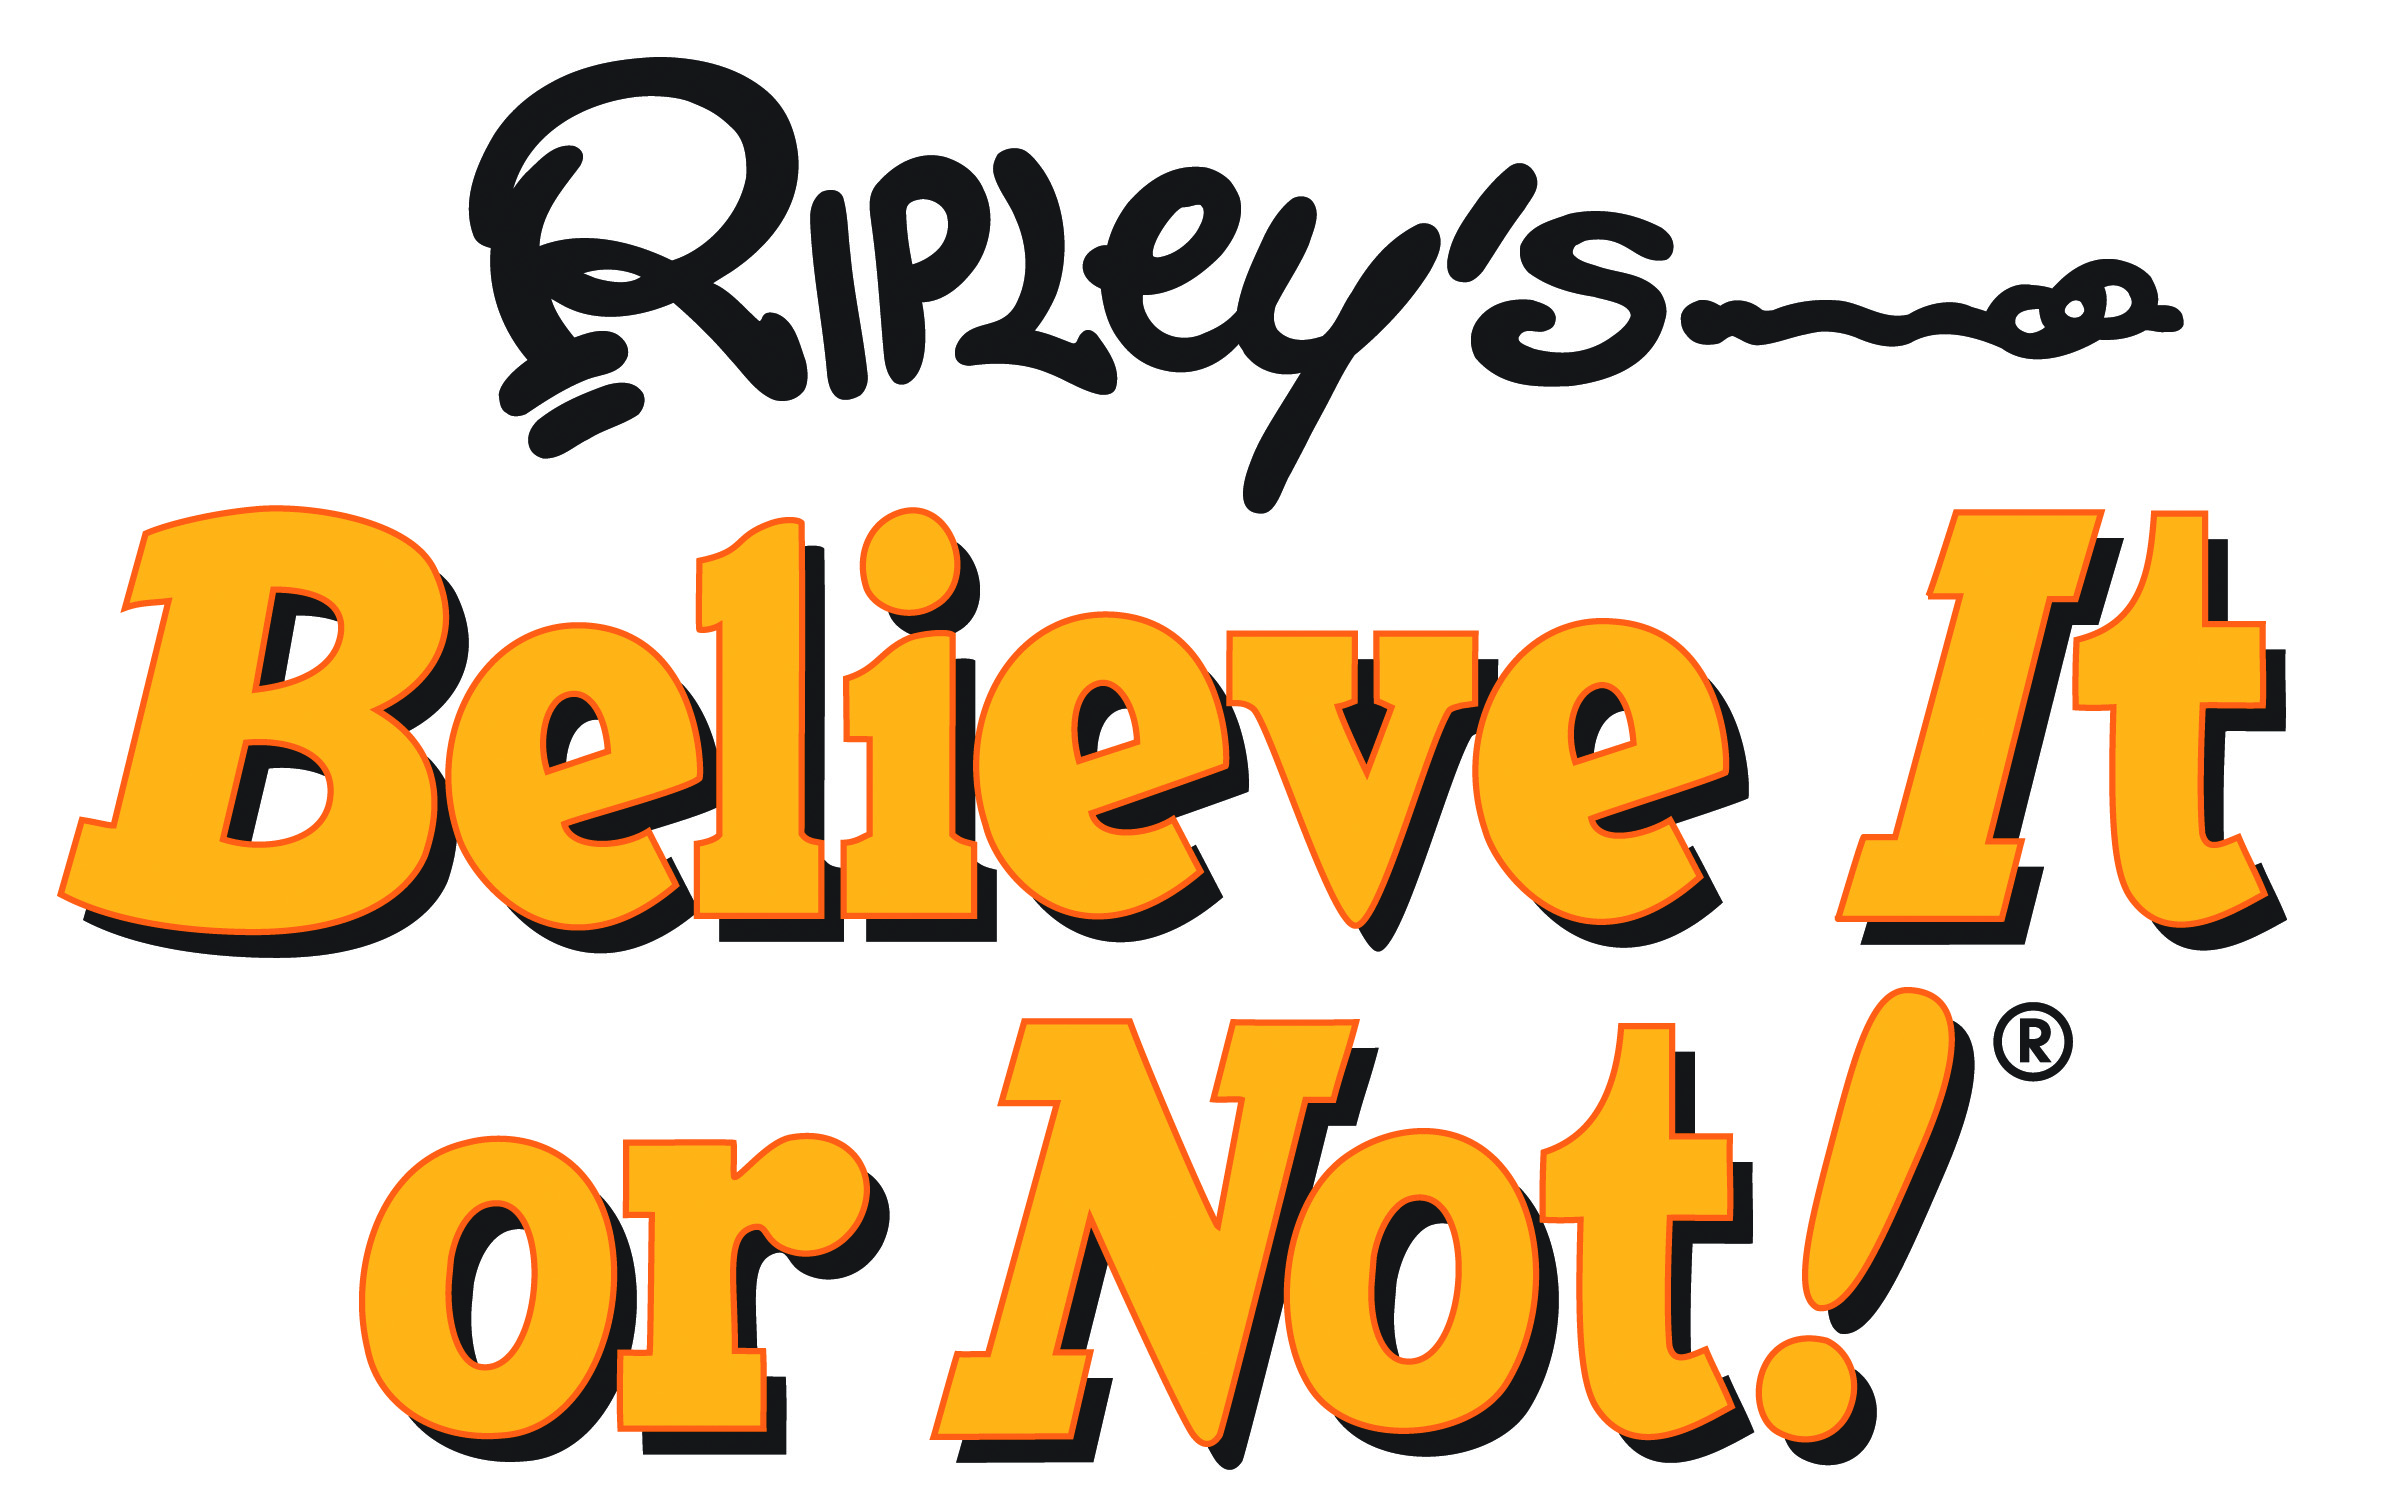 Coupon ripley's believe it or not